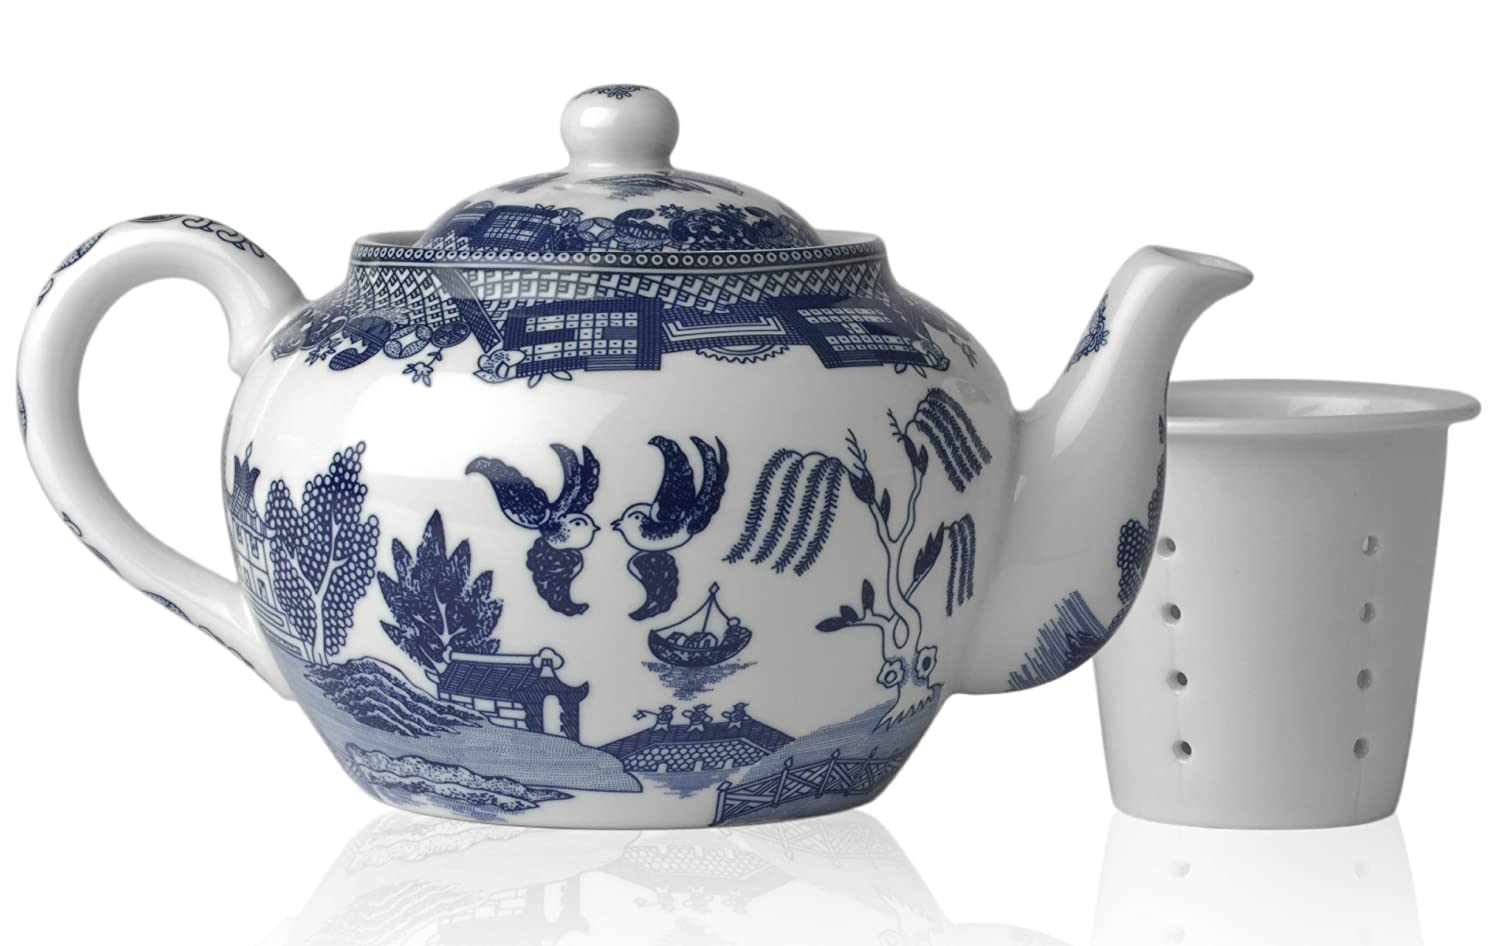 HIC Blue Willow 16-Ounce Teapot with Infuser